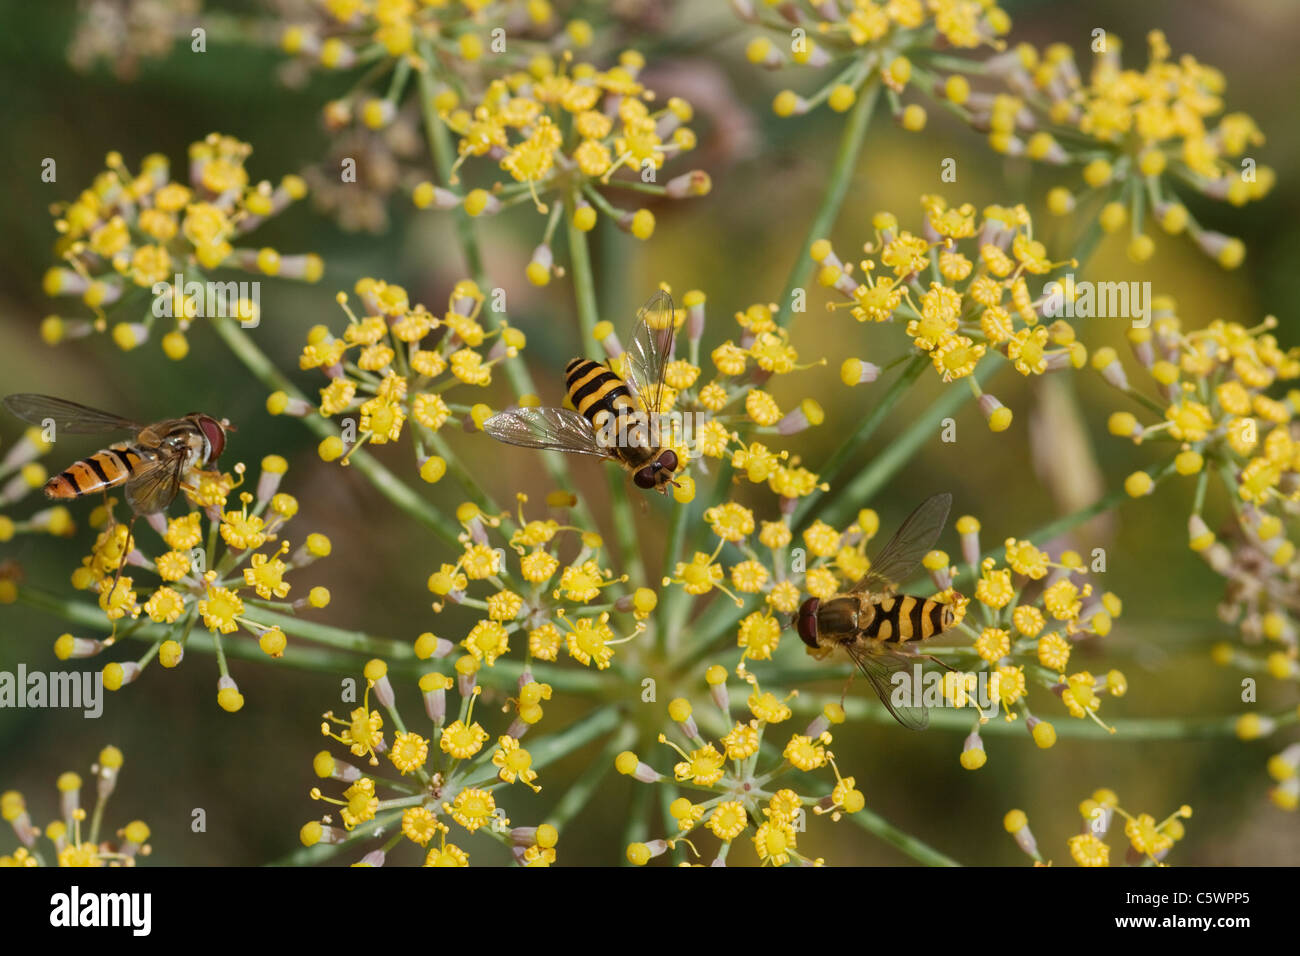 hoverflies-on-fennel-flower-melascaeava-